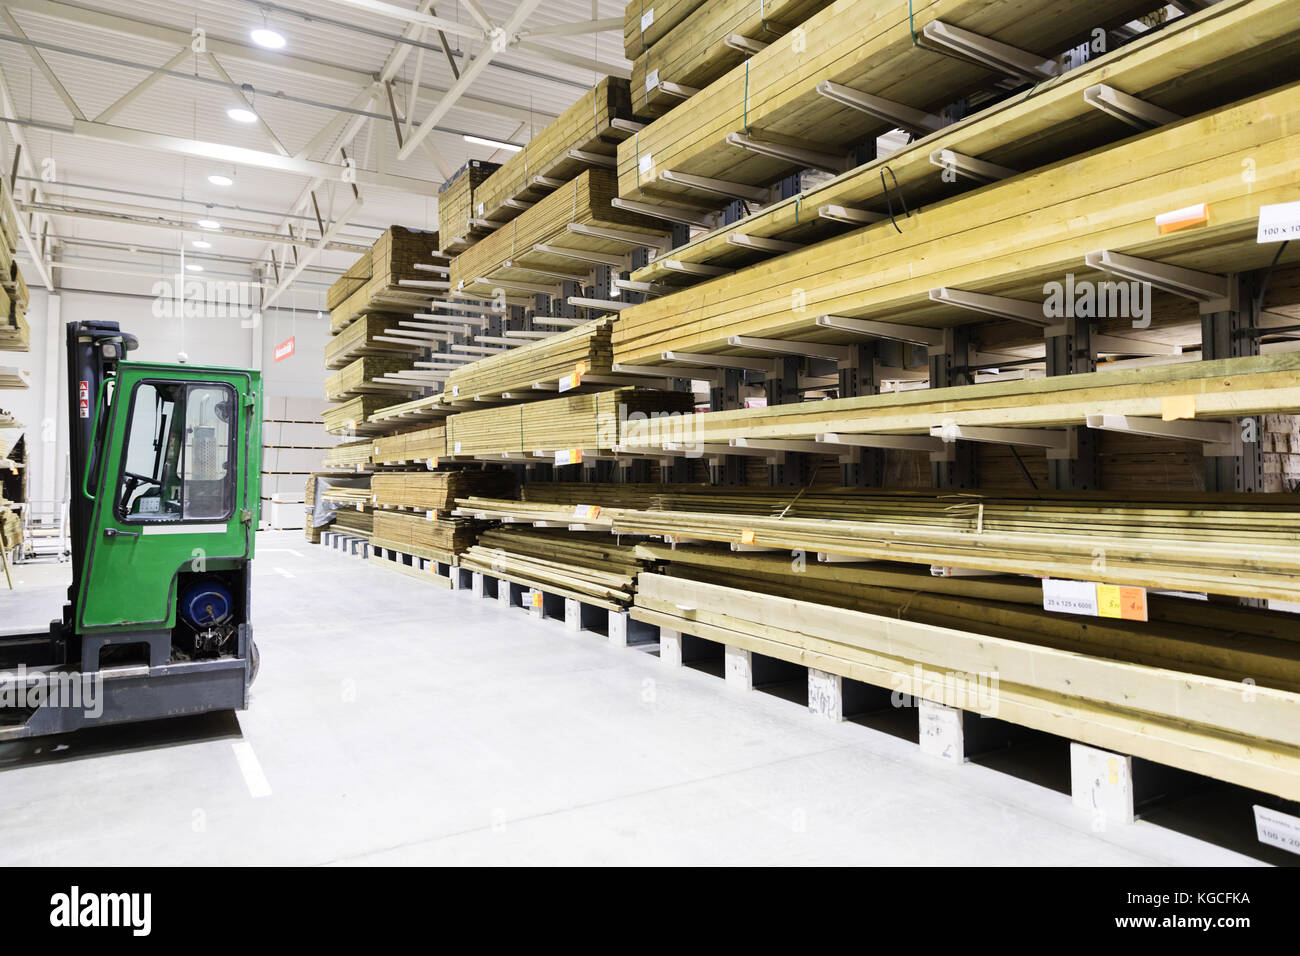 timber warehouse - shelves with wooden planks and forklift - Stock Image